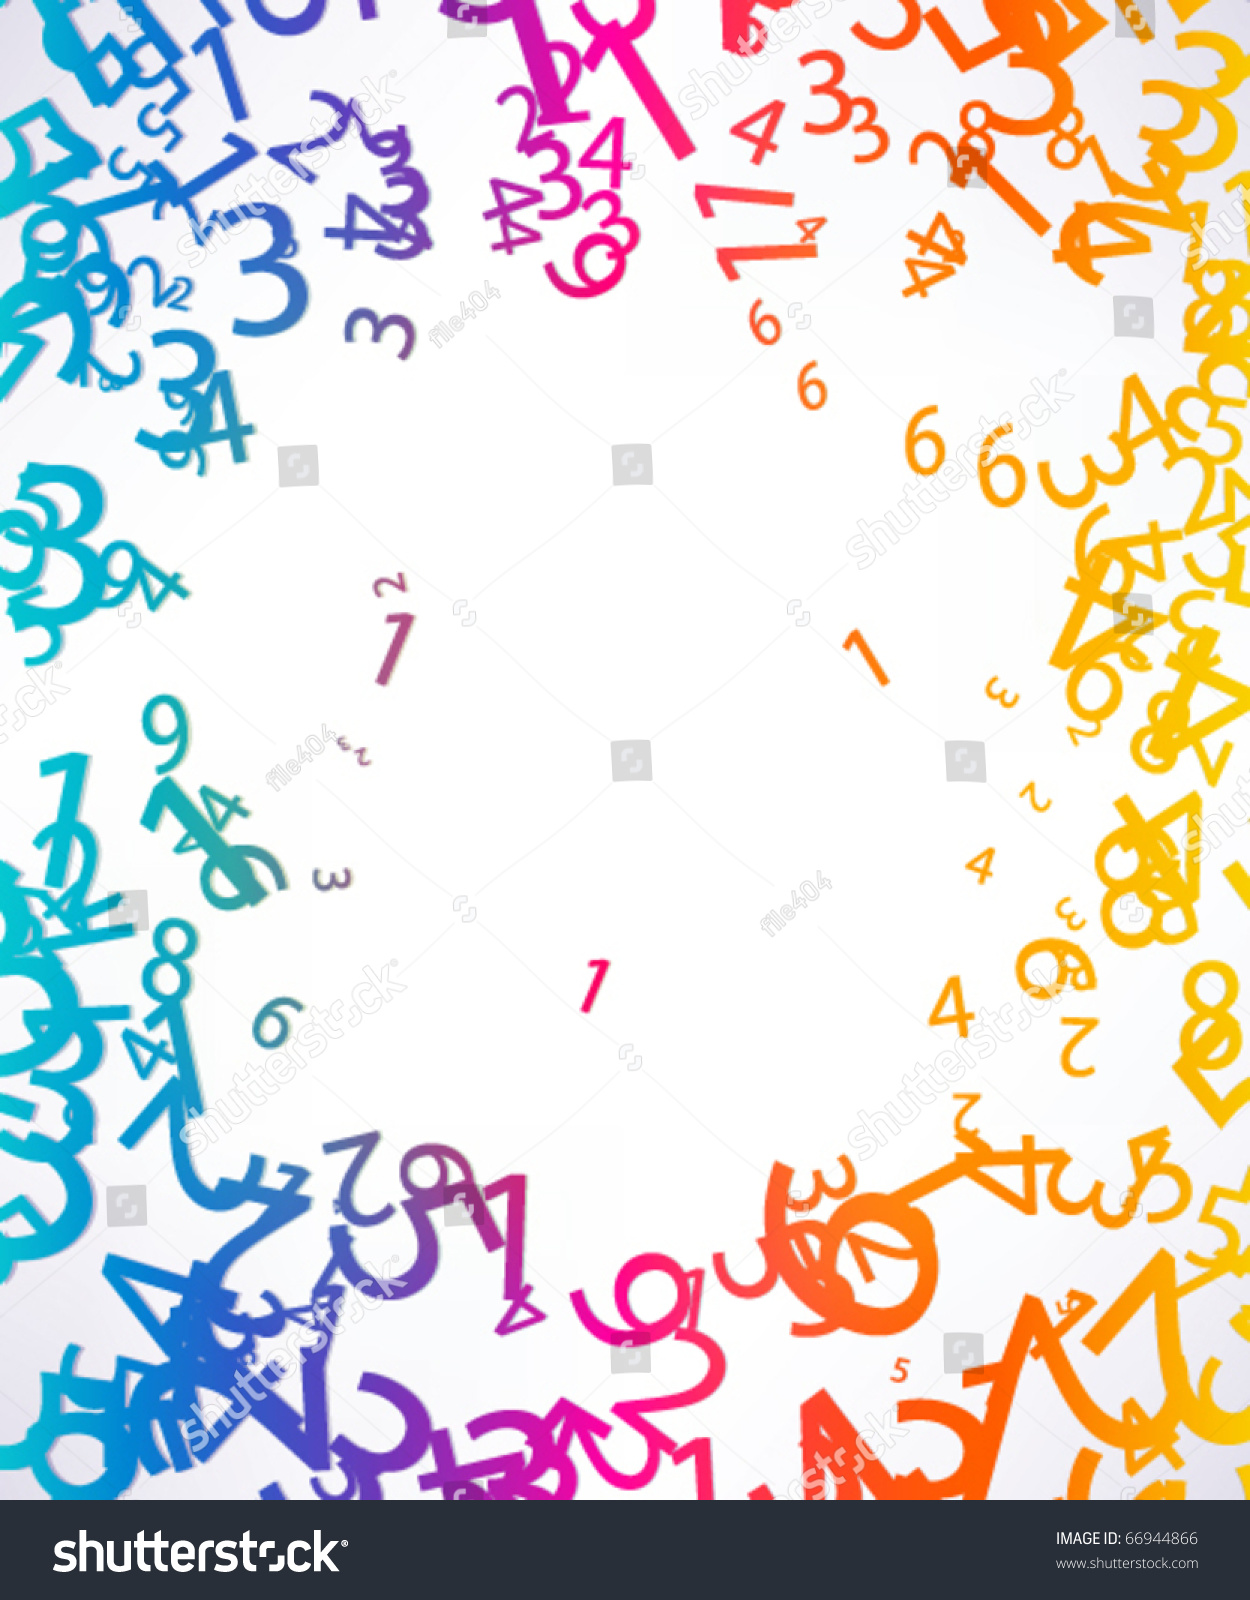 Abstract Colorful Background Numbers Stock Vector 66944866 ...  Abstract Colorf...